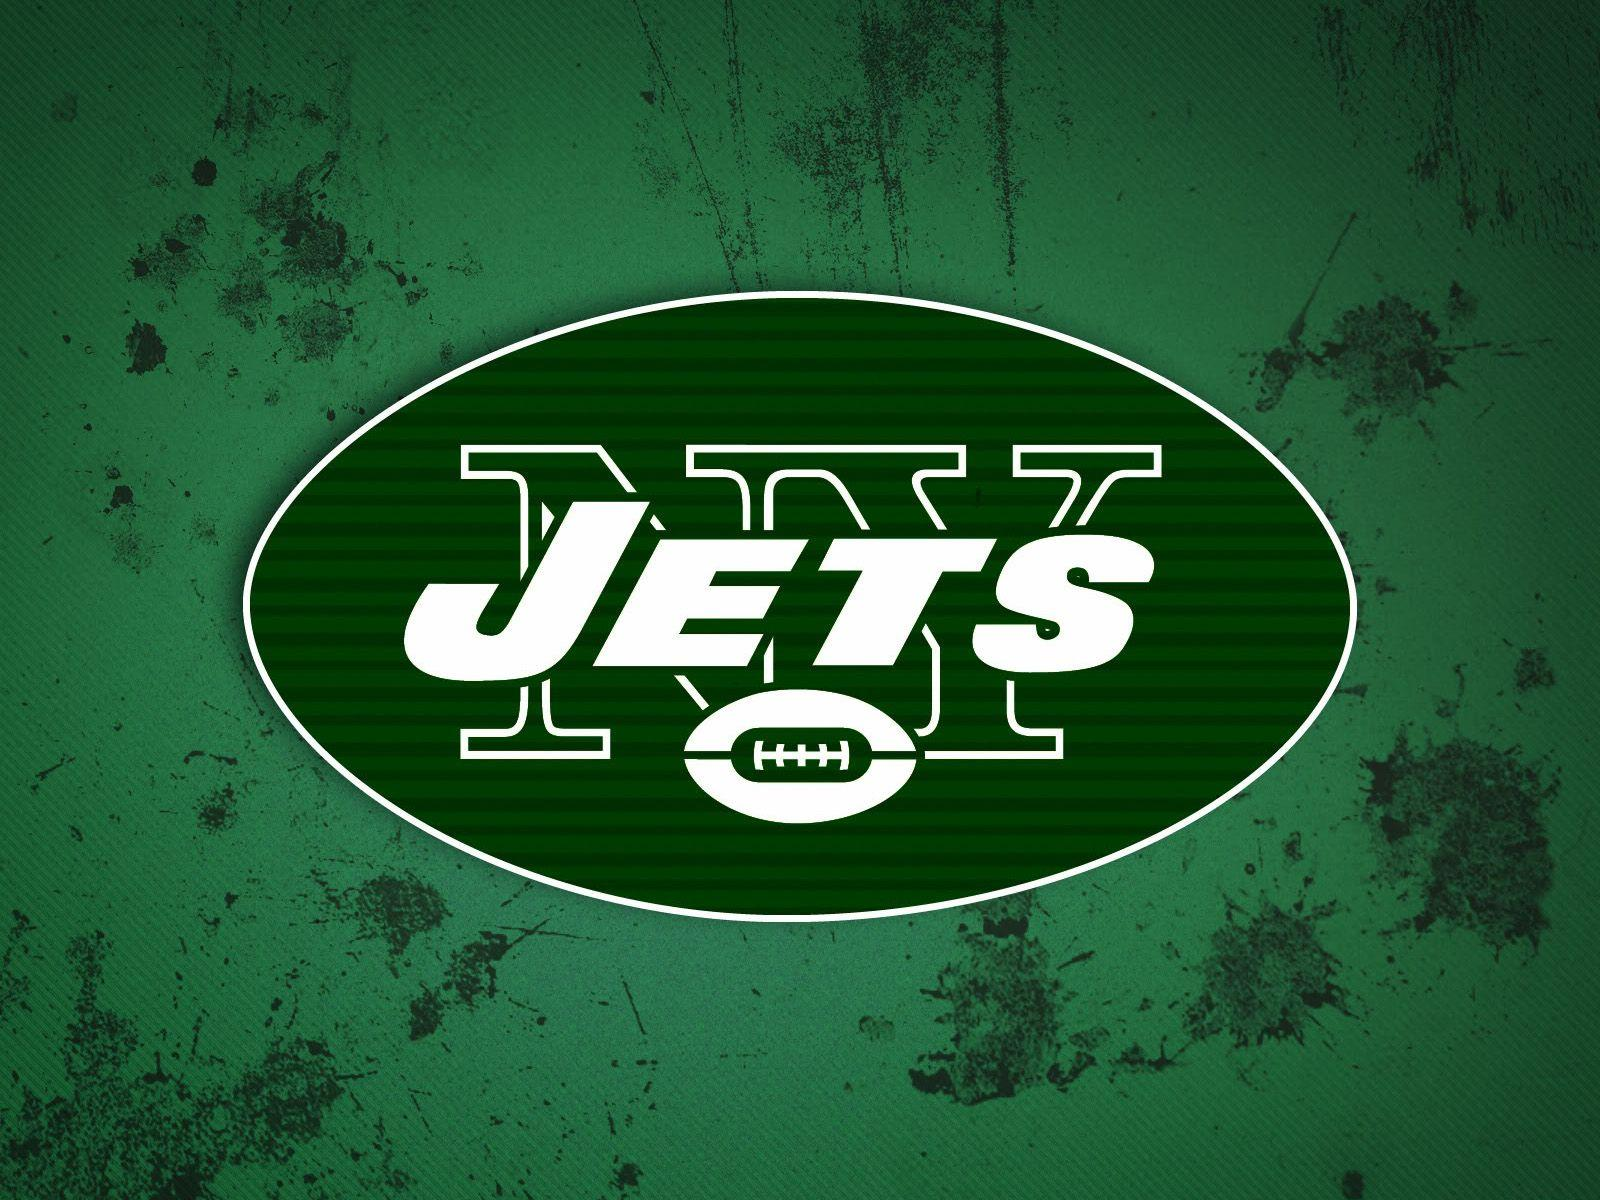 70 New York Jets HD Wallpapers